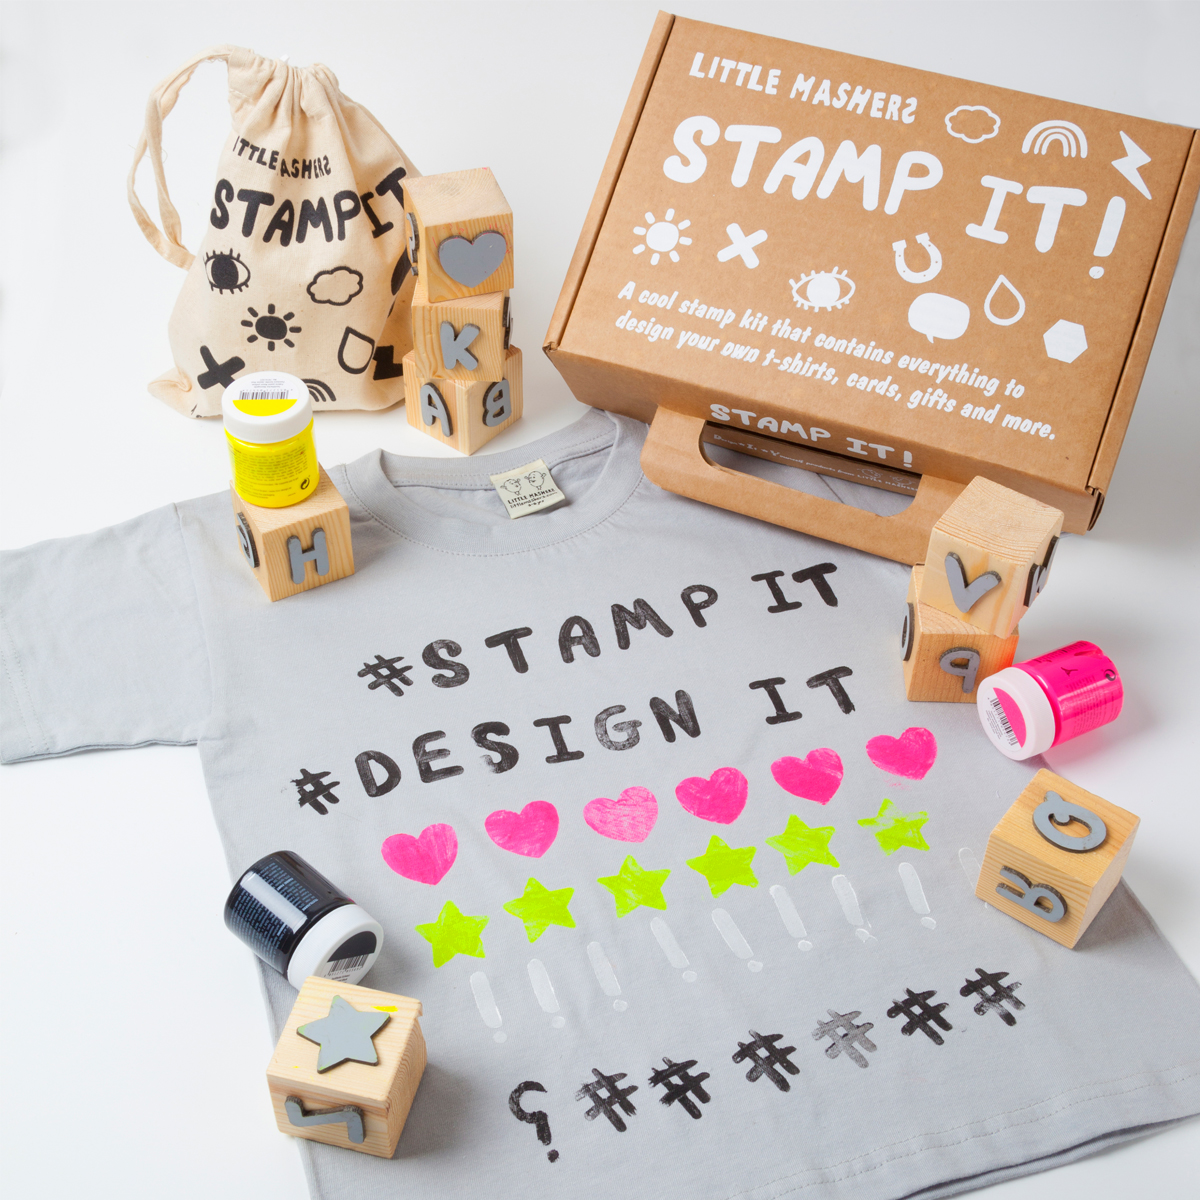 Little Mashers Stamp It! Kit in Letters